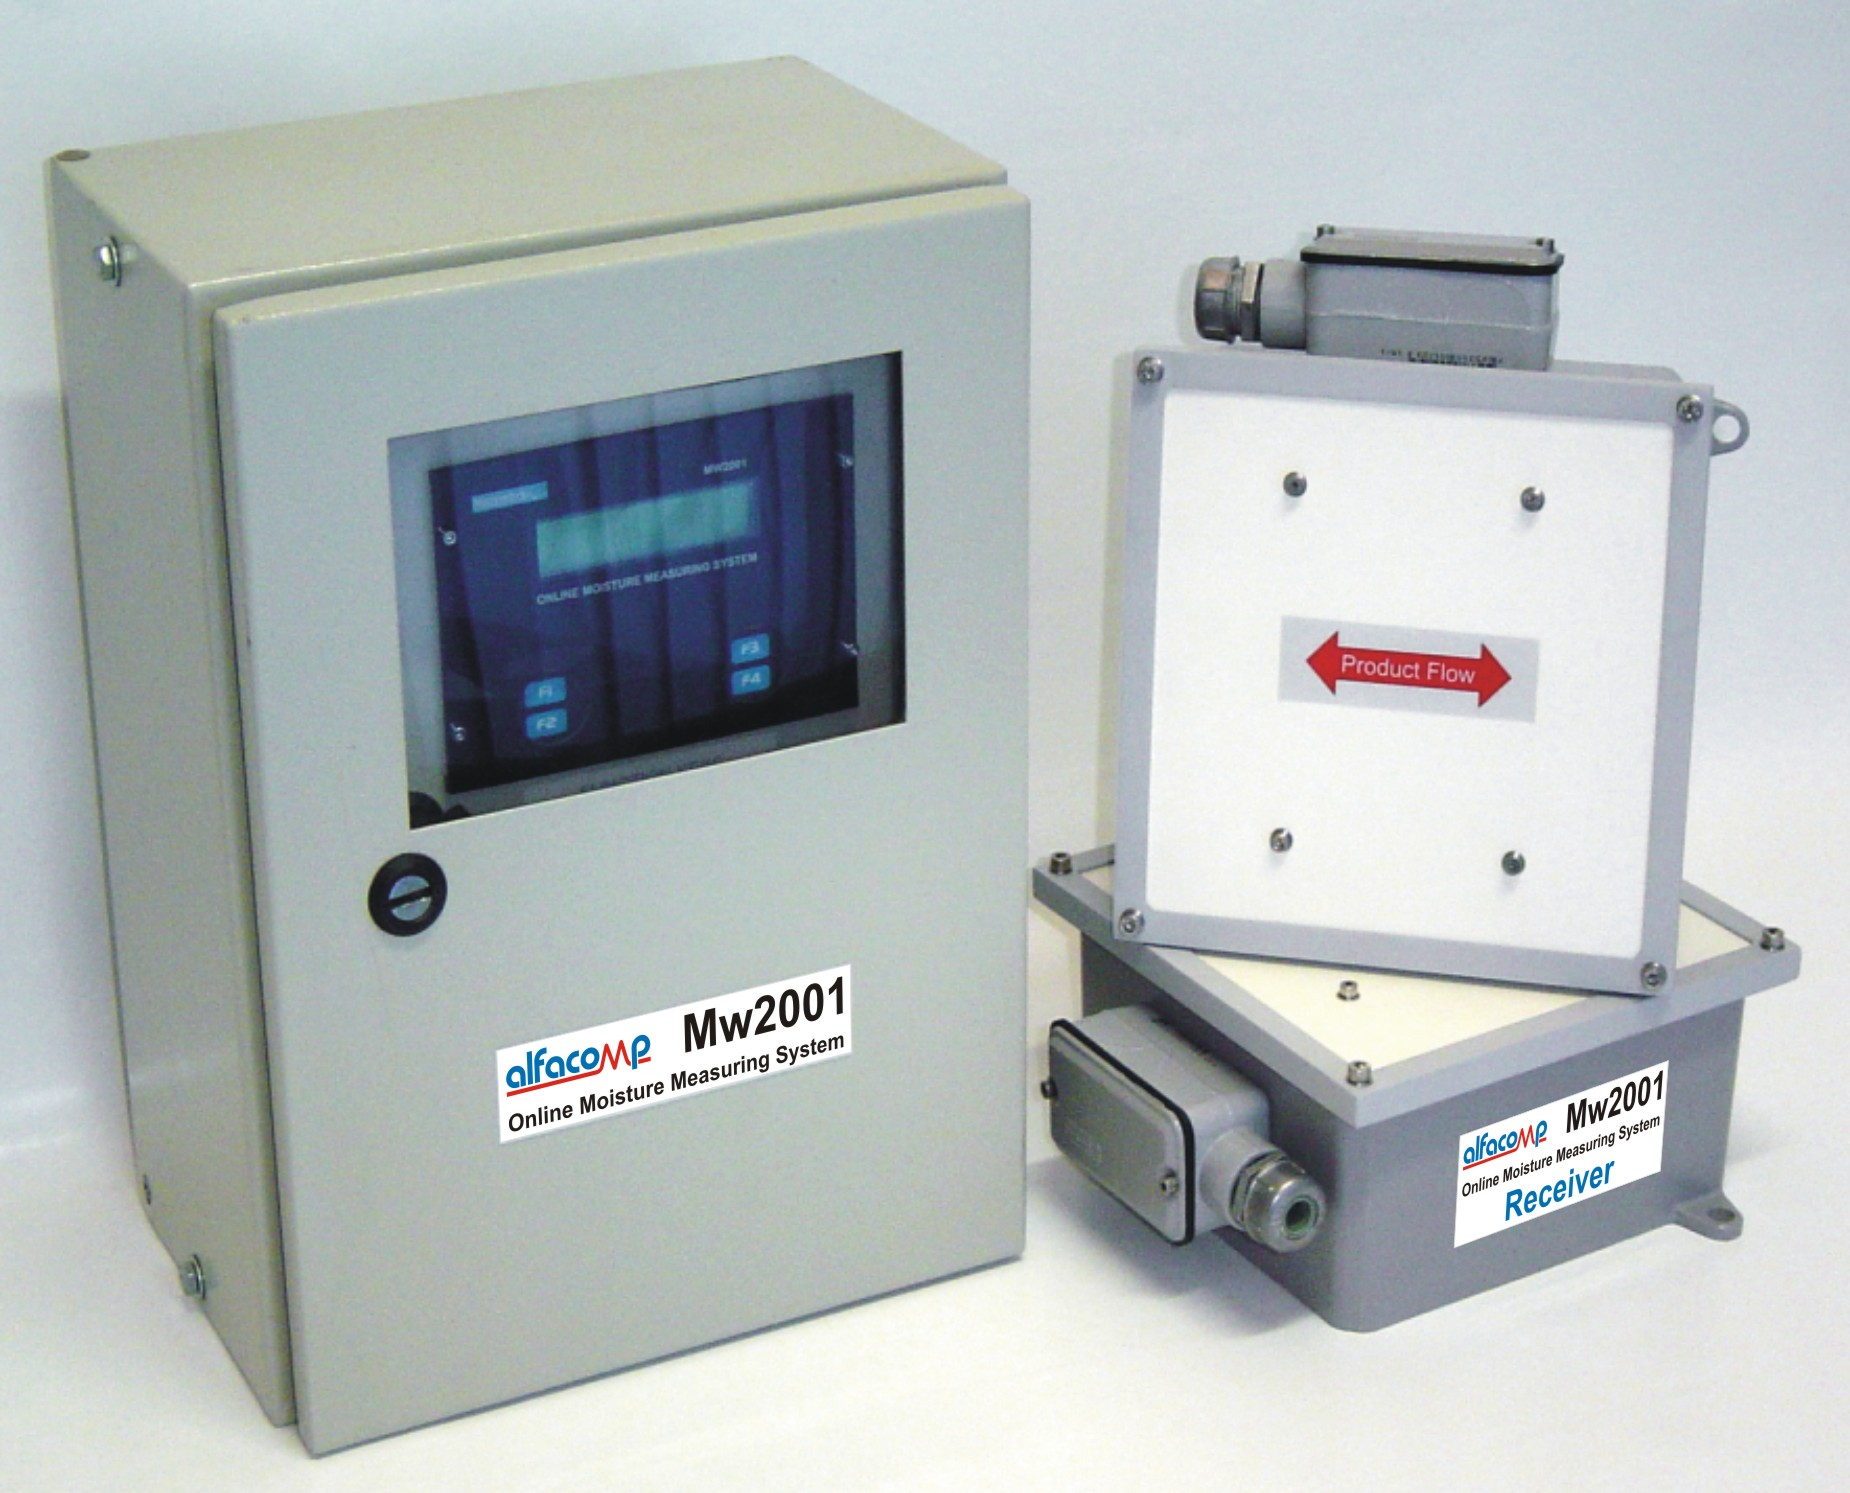 Mw2001 – Online moisture measuring system